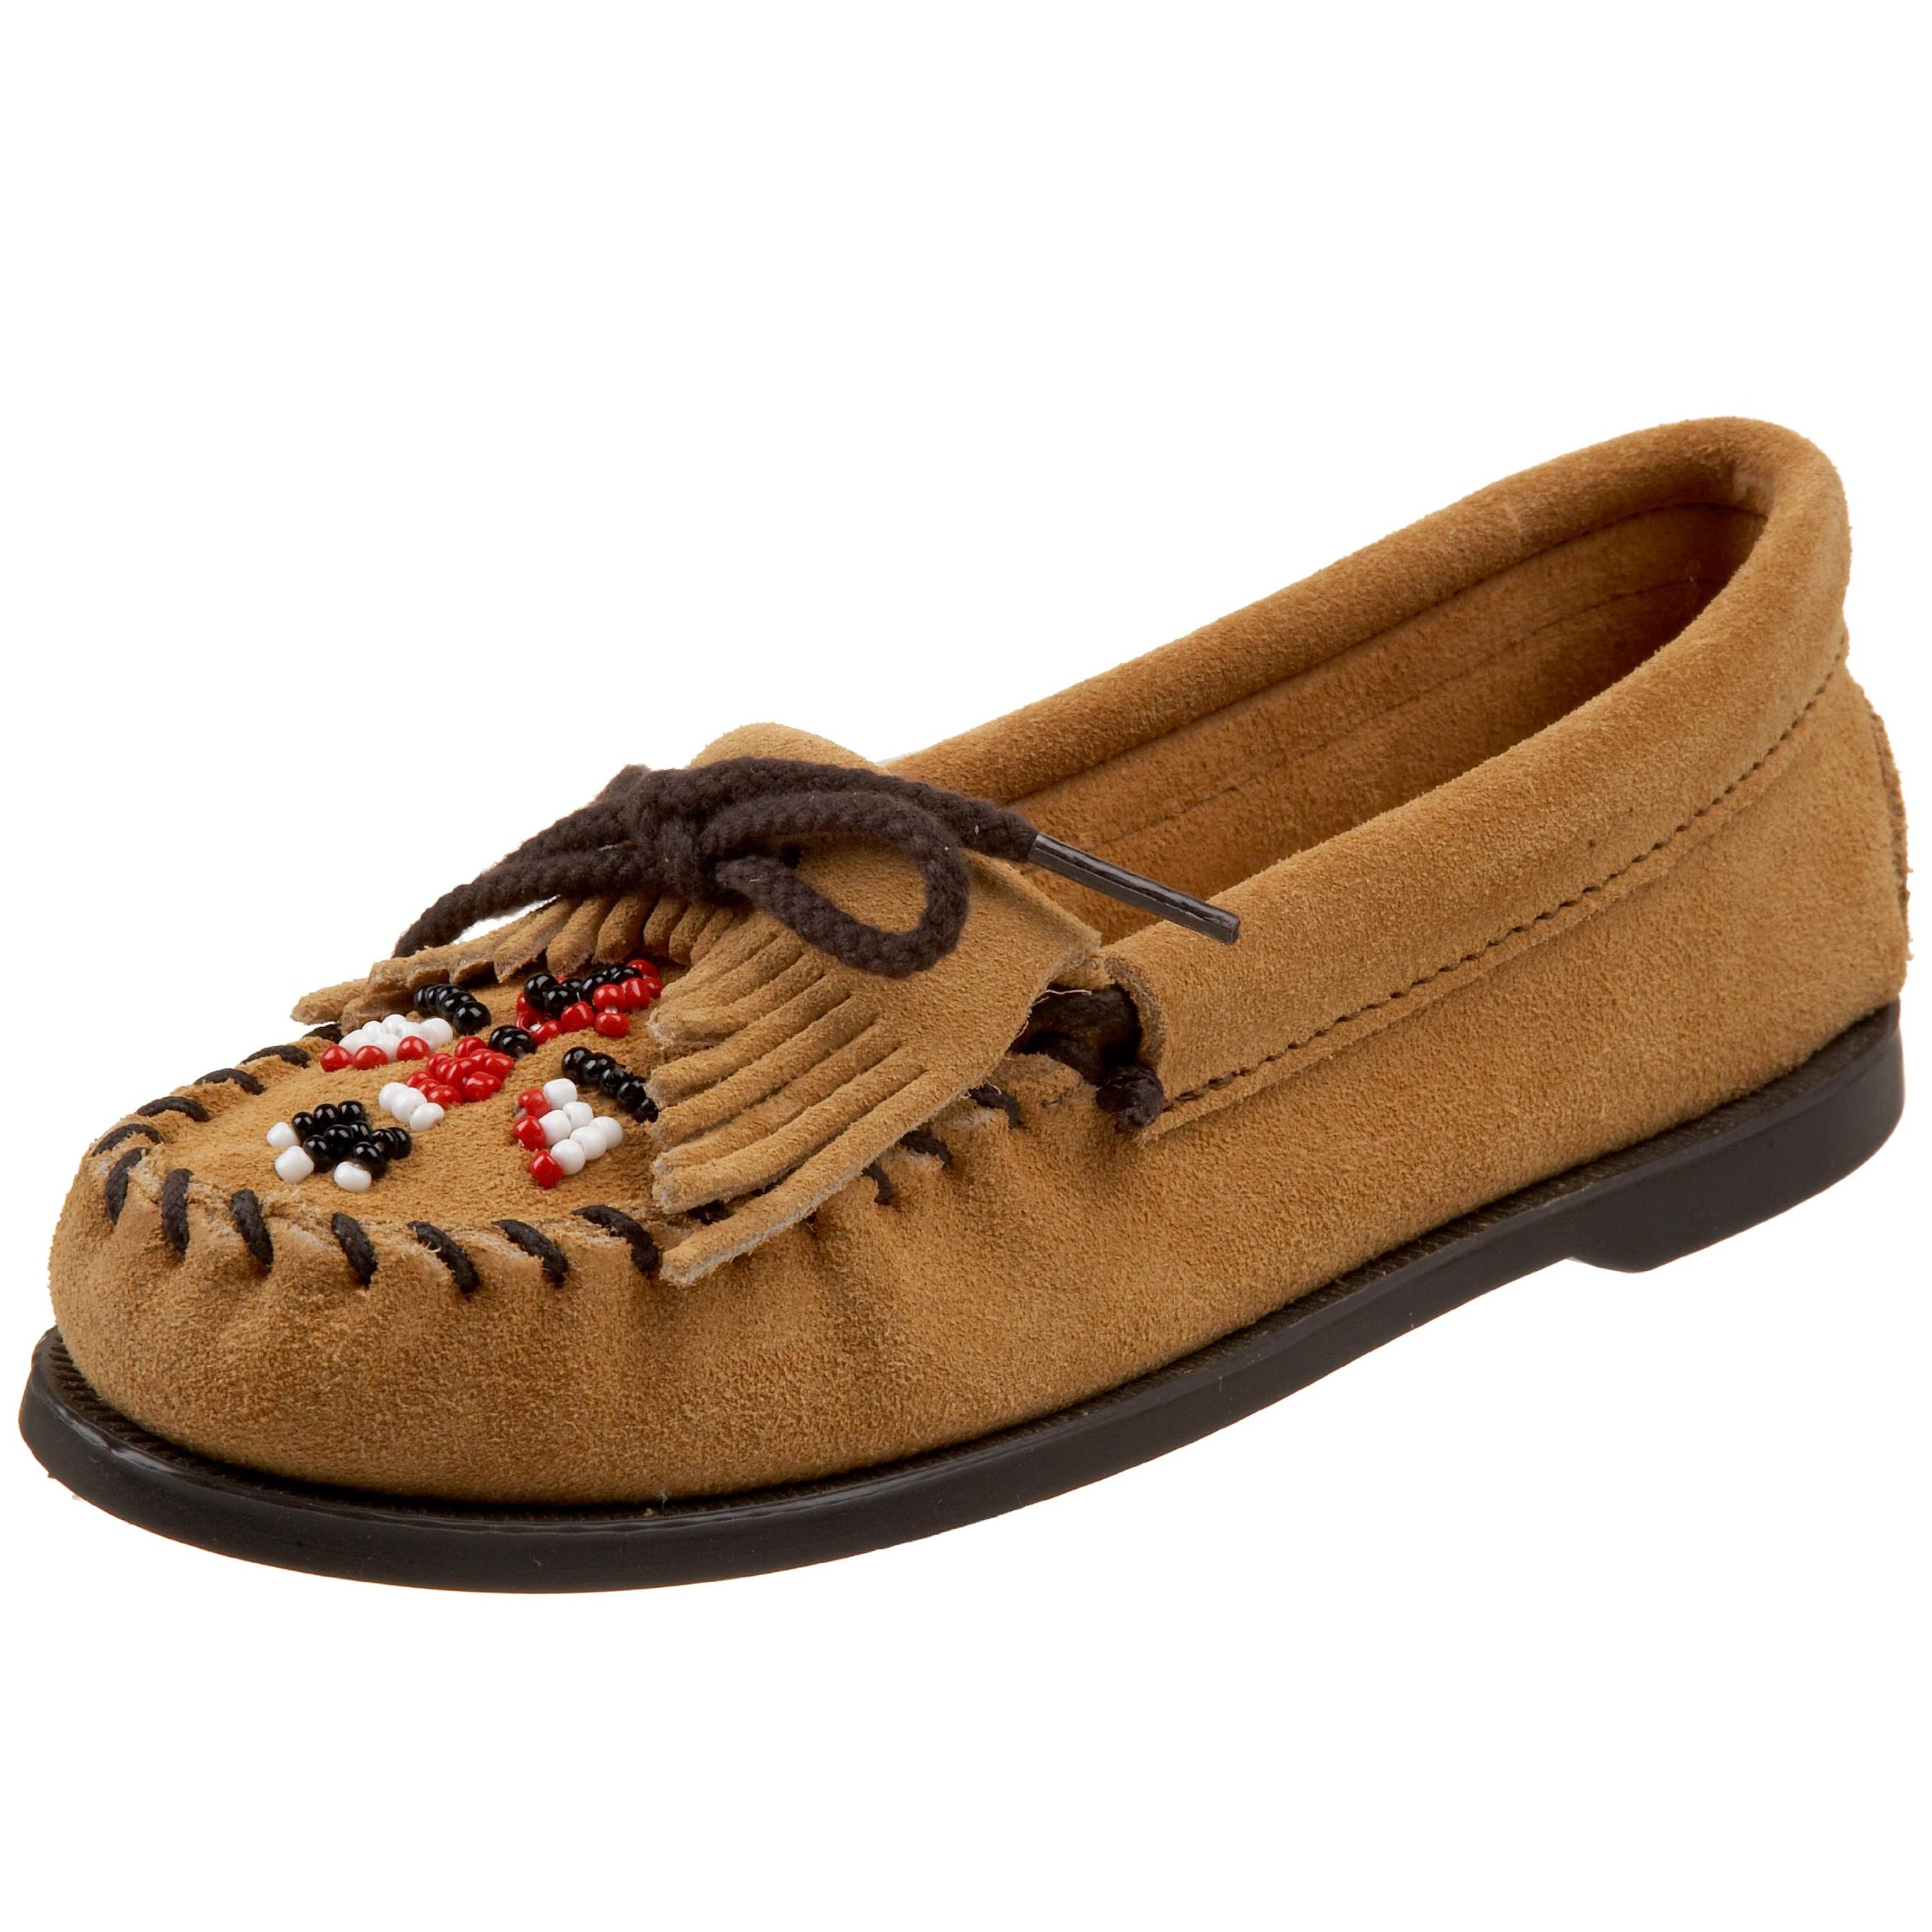 Minnetonka Thunderbird Moccasin (Toddler/Little Kid),Tan,9 M US Toddler